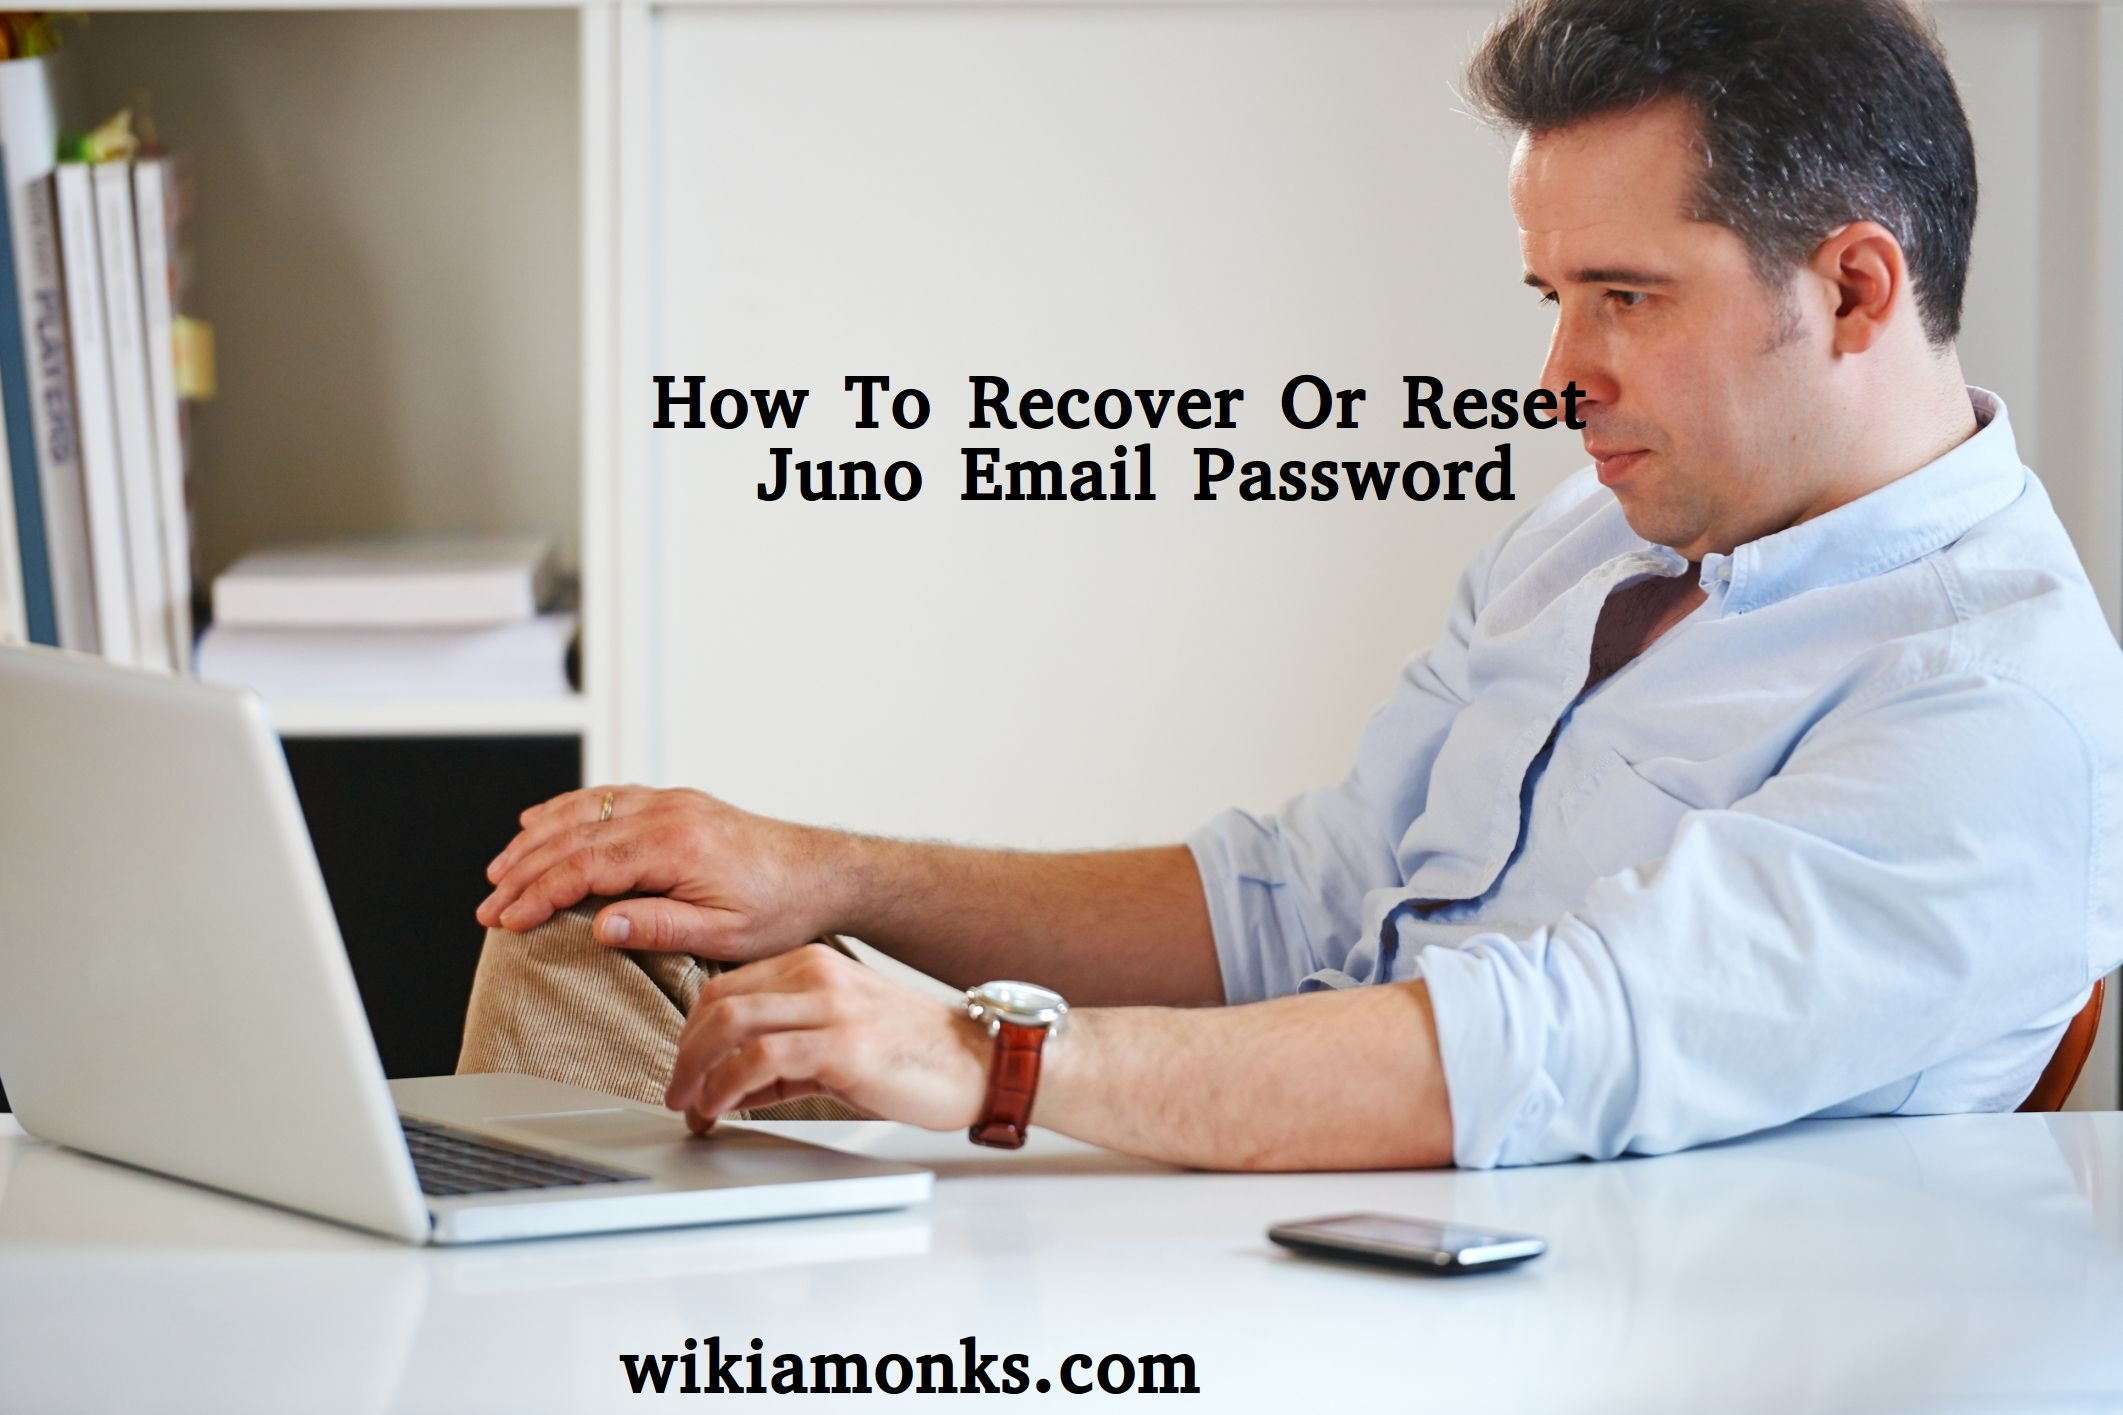 Step To Reset or Recover Juno Email Password | Wikiamonks